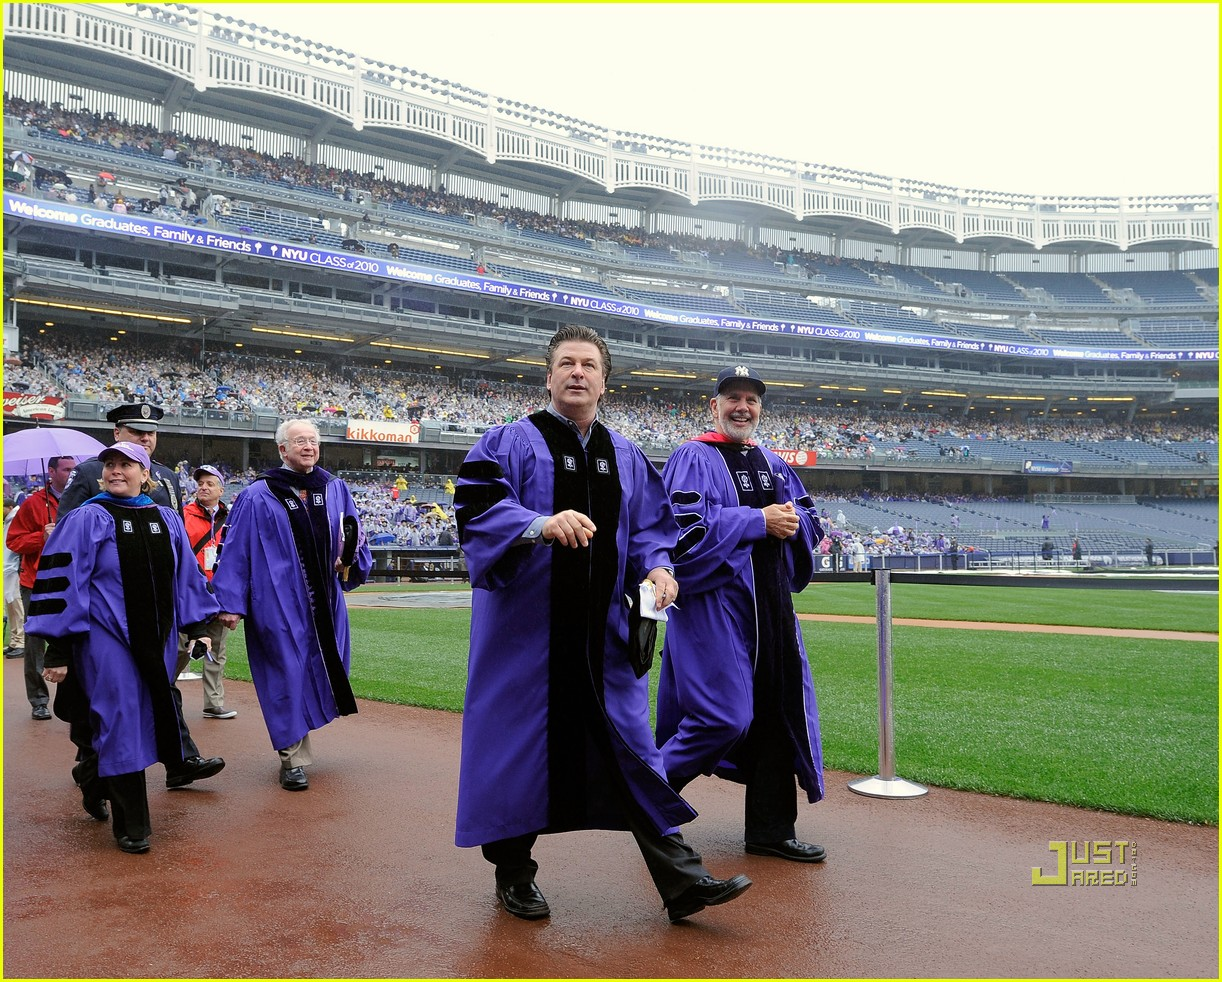 Alec Baldwin: NYU's Commencement Speaker! Alec Baldwin